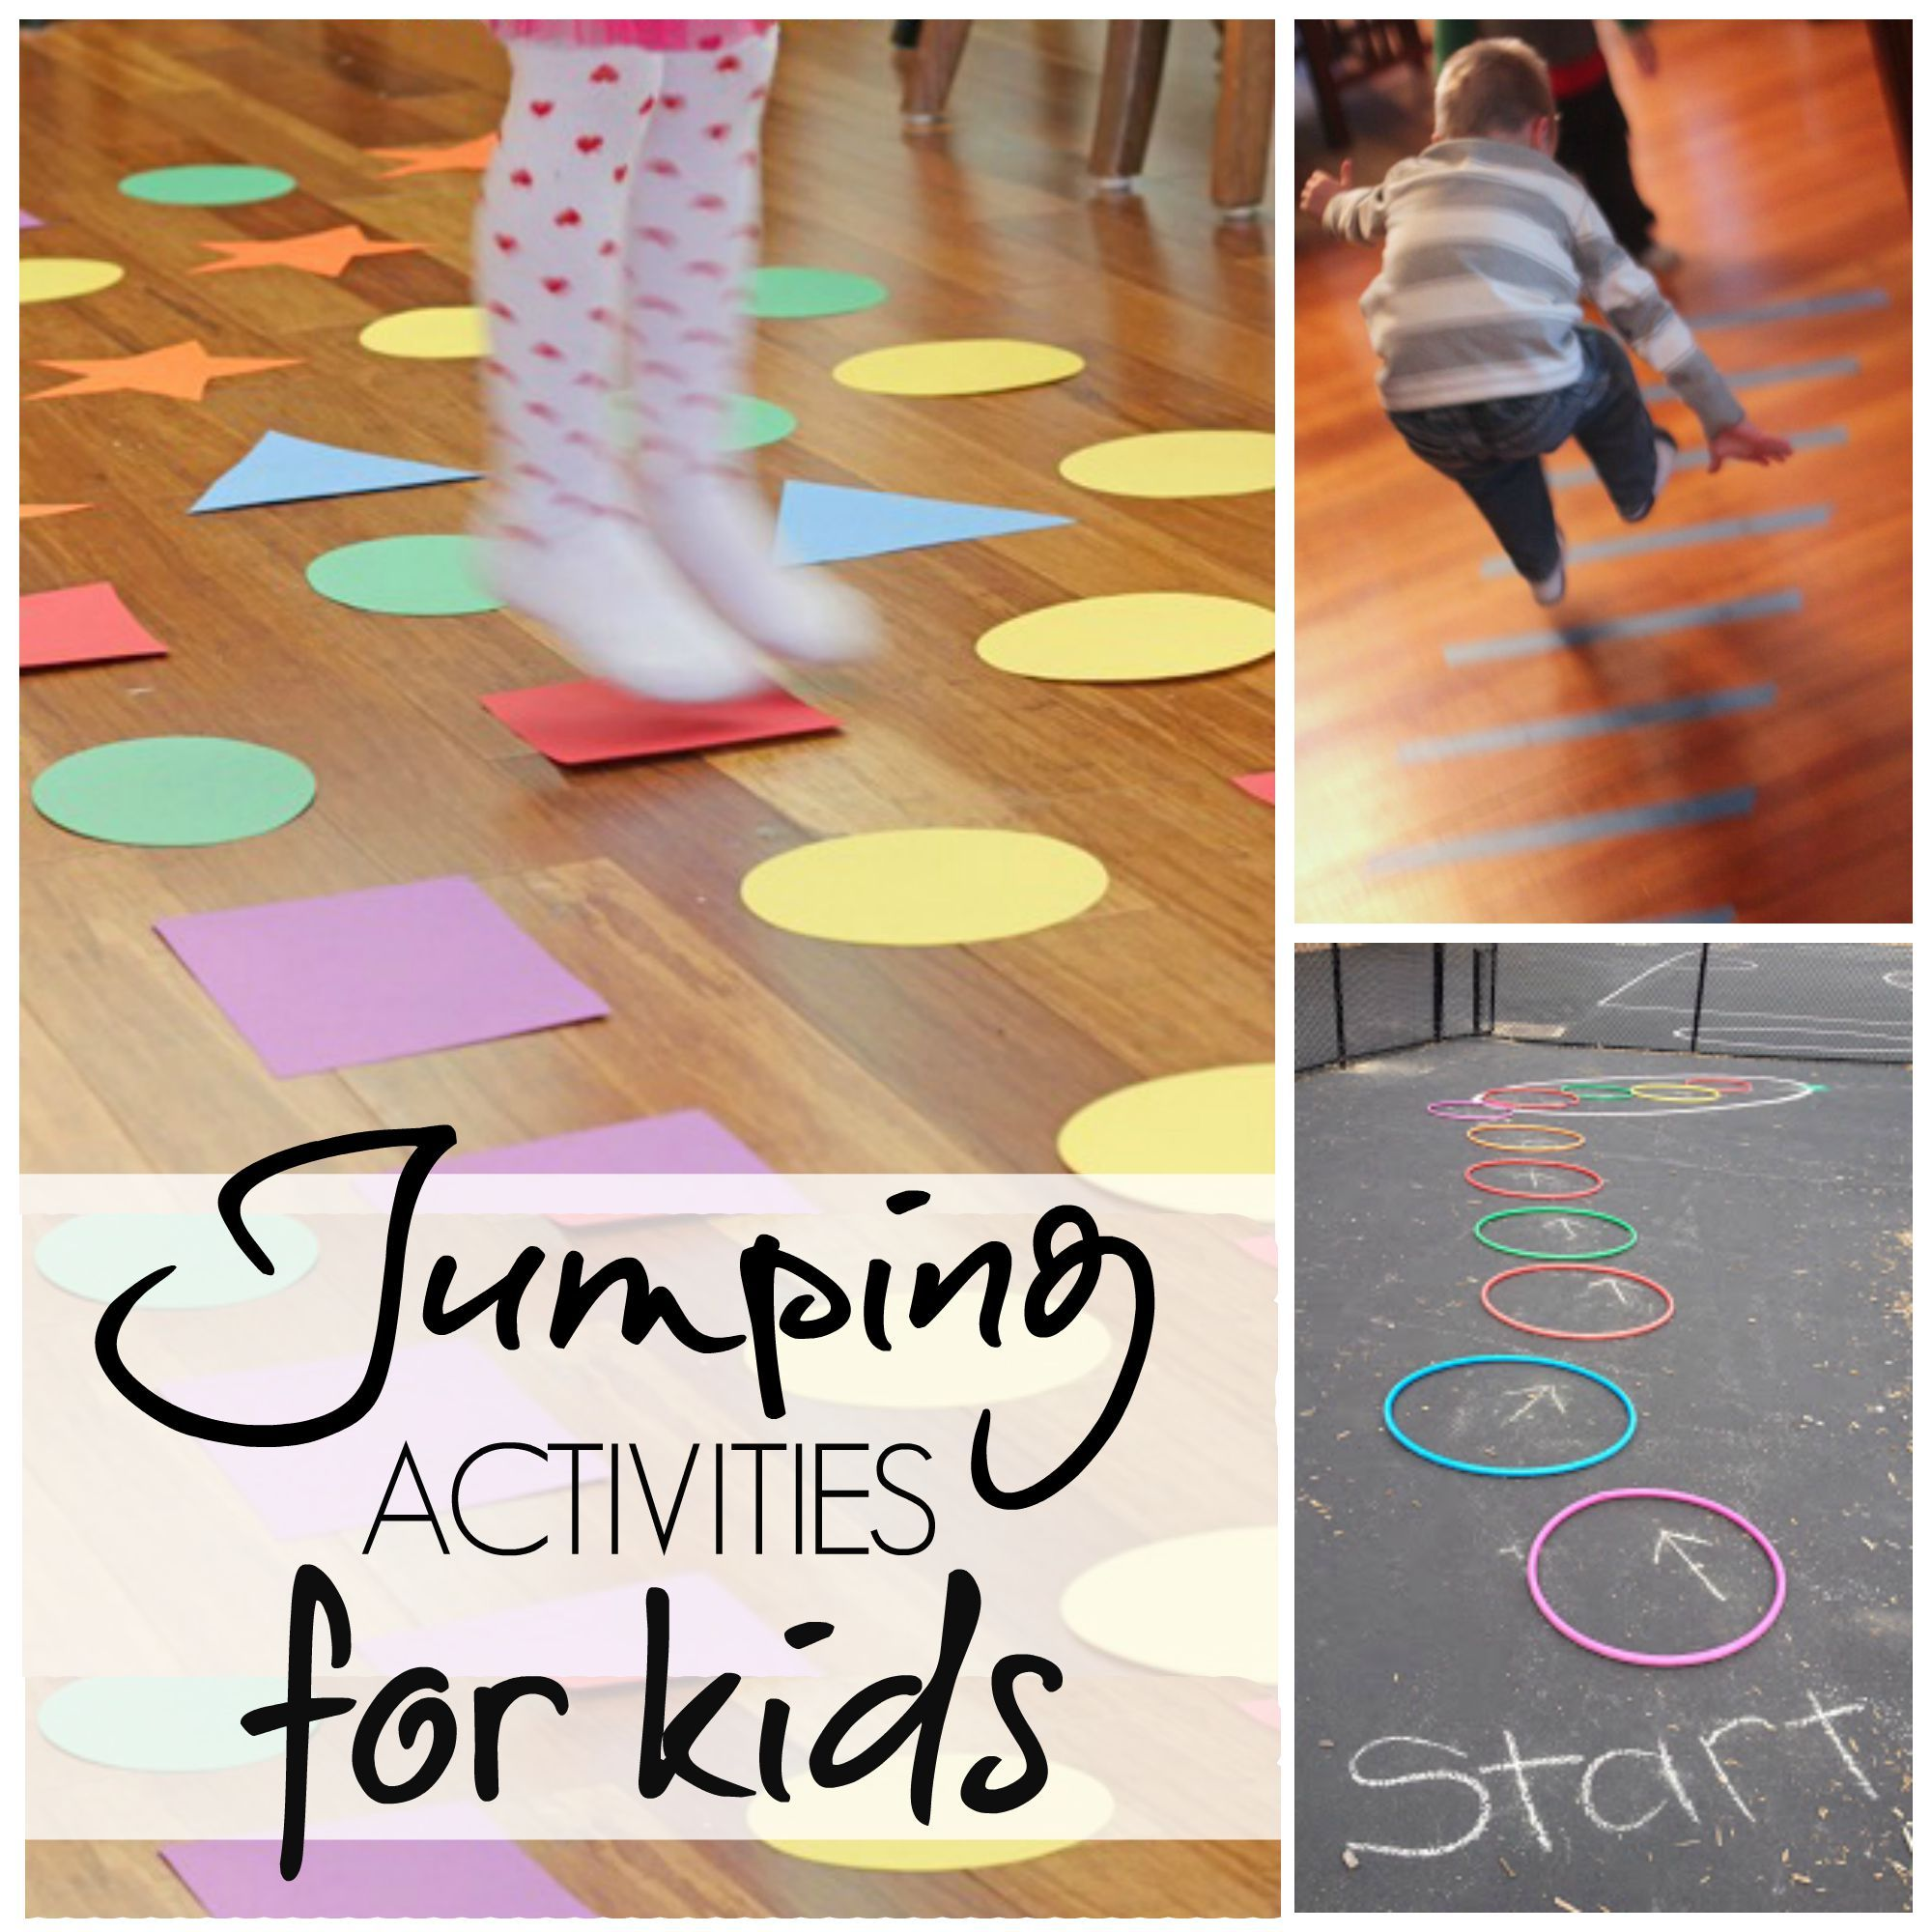 Jumping Activities for Kids great for gross motor development ad